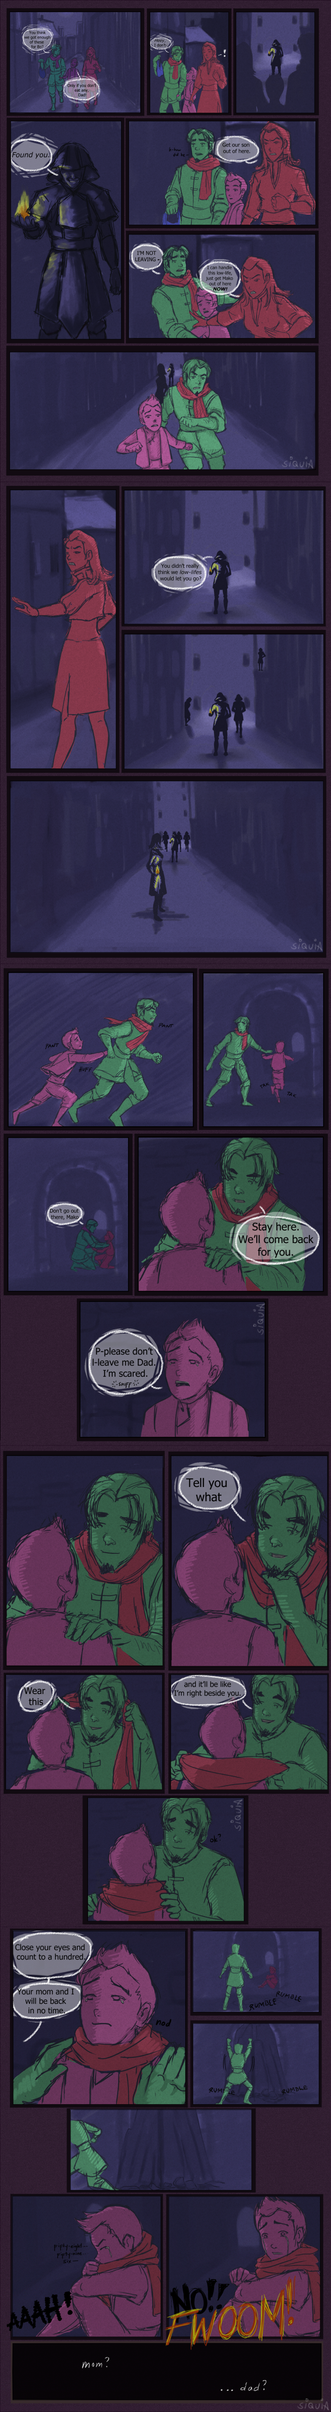 Mako and Bolin's Parents: What Really Happened by siquia